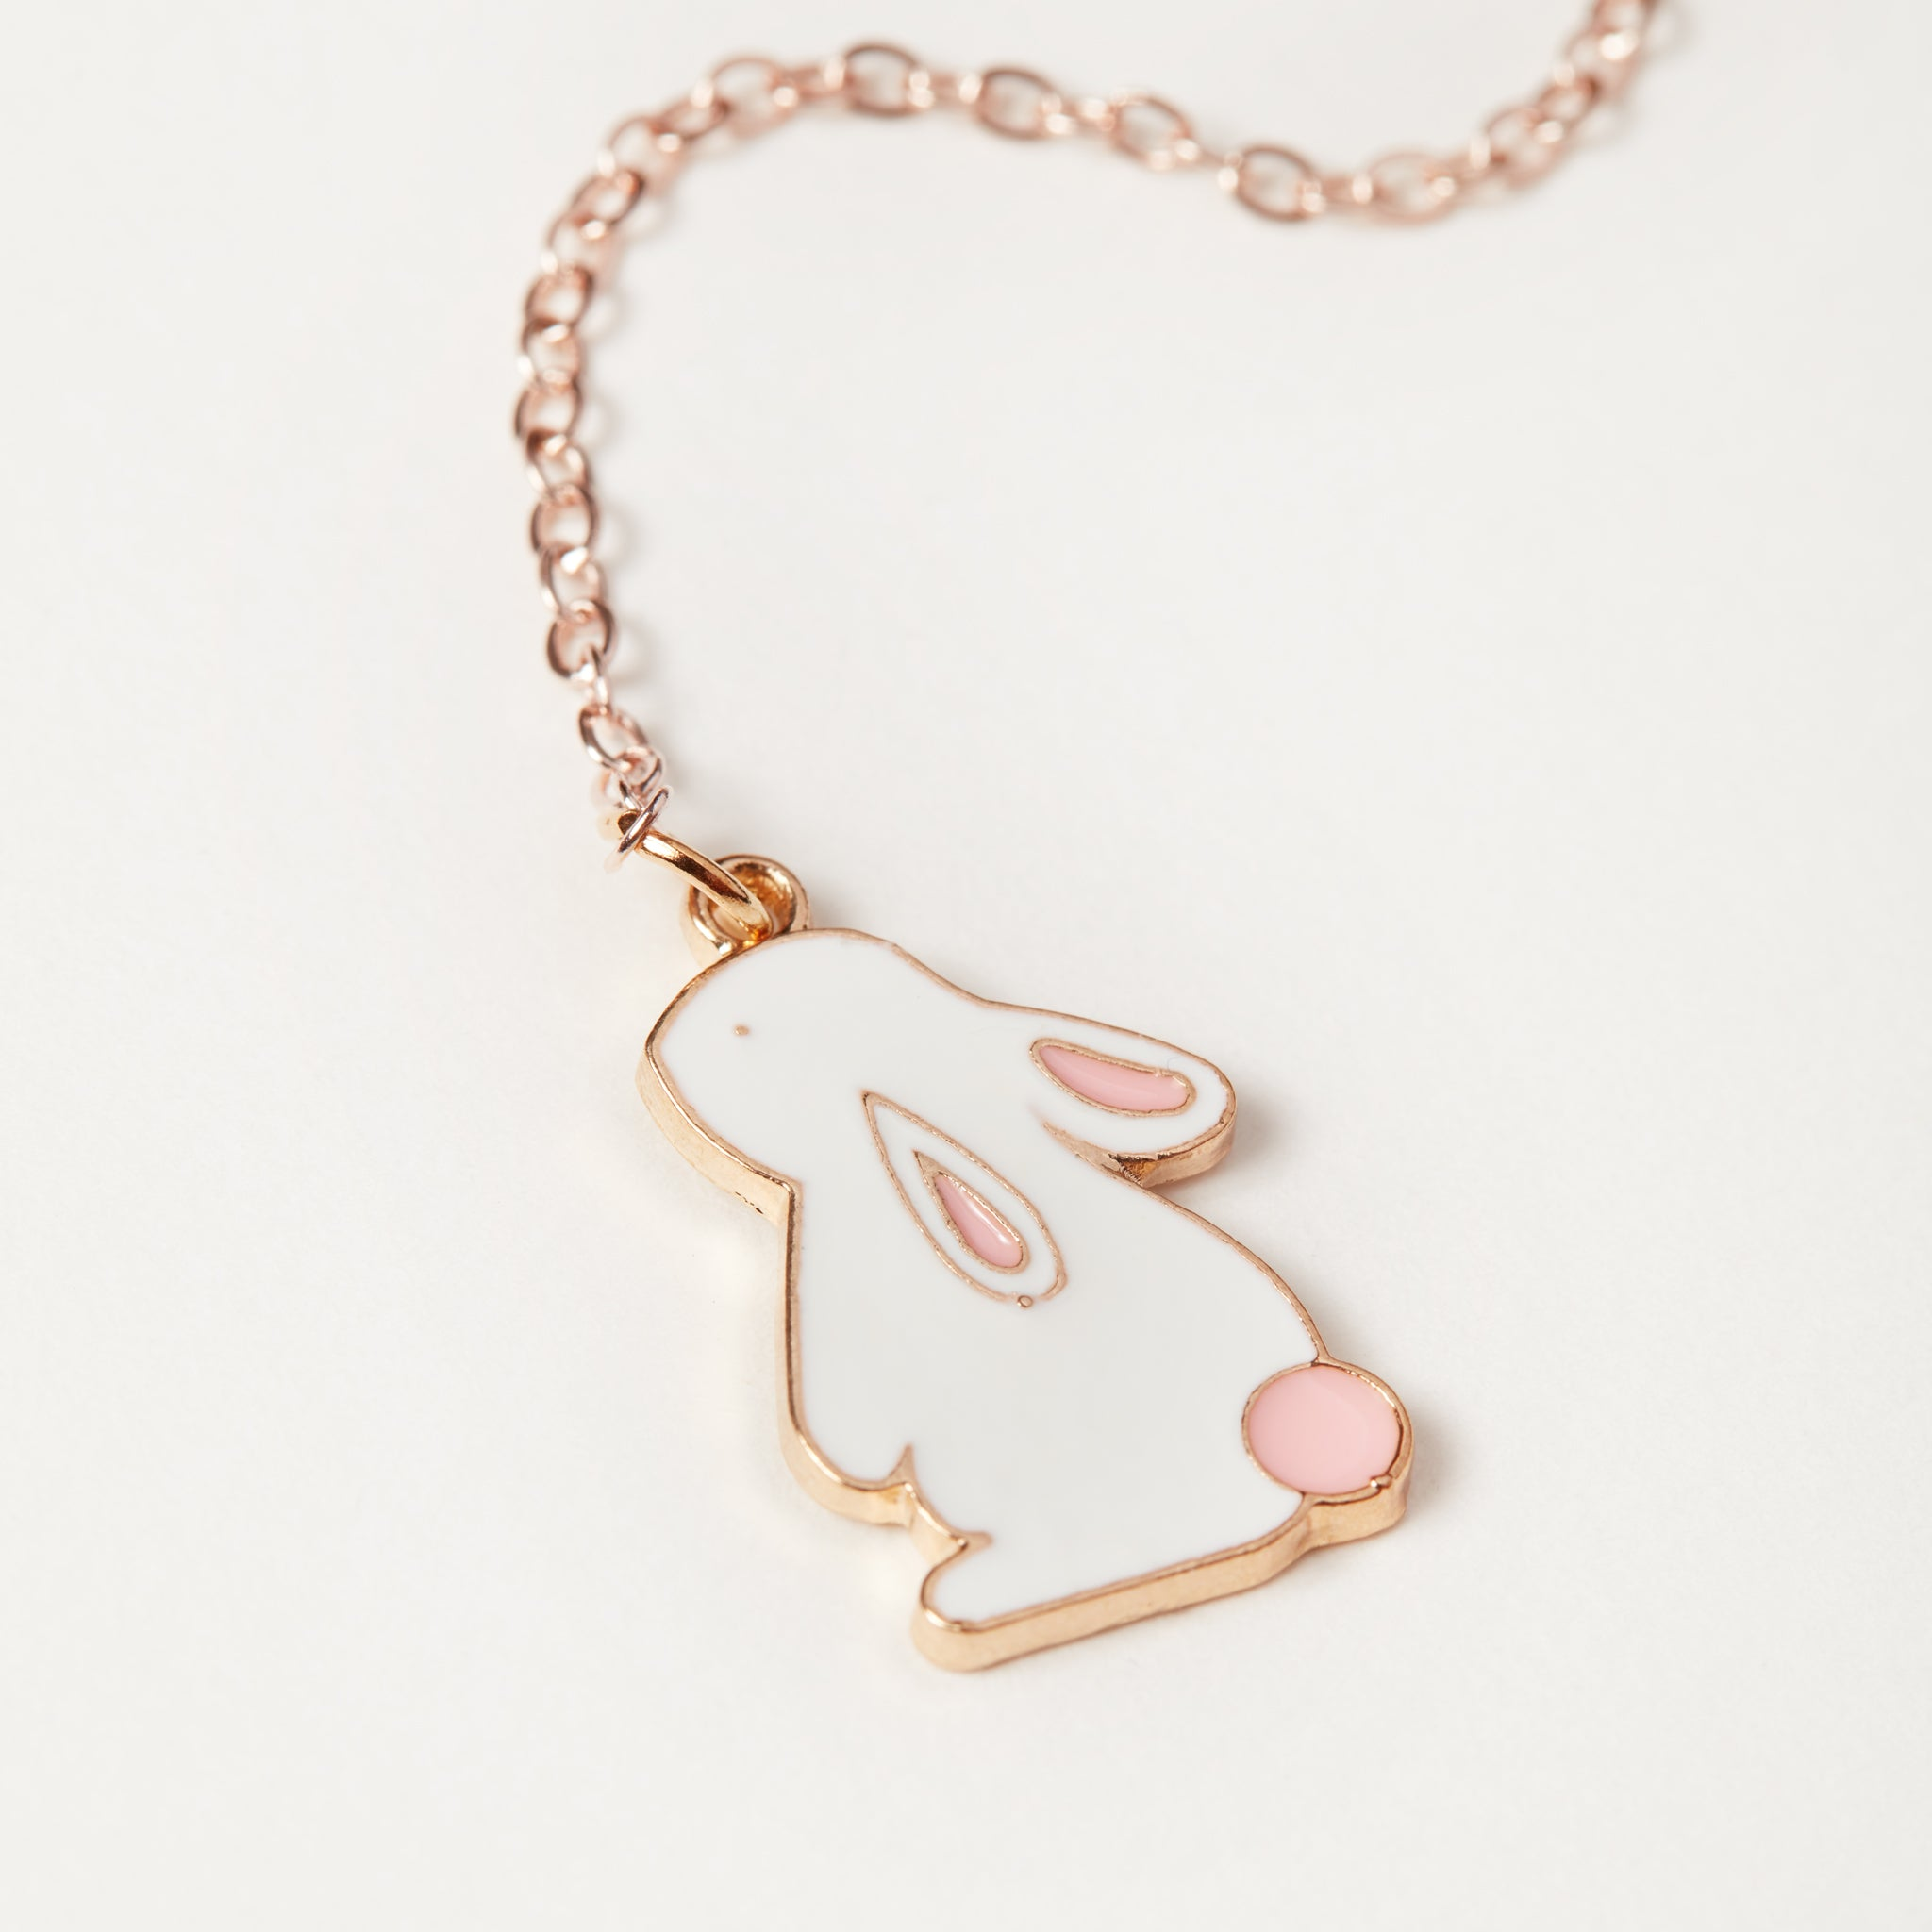 Enamel metal bunny charm on a chain close up